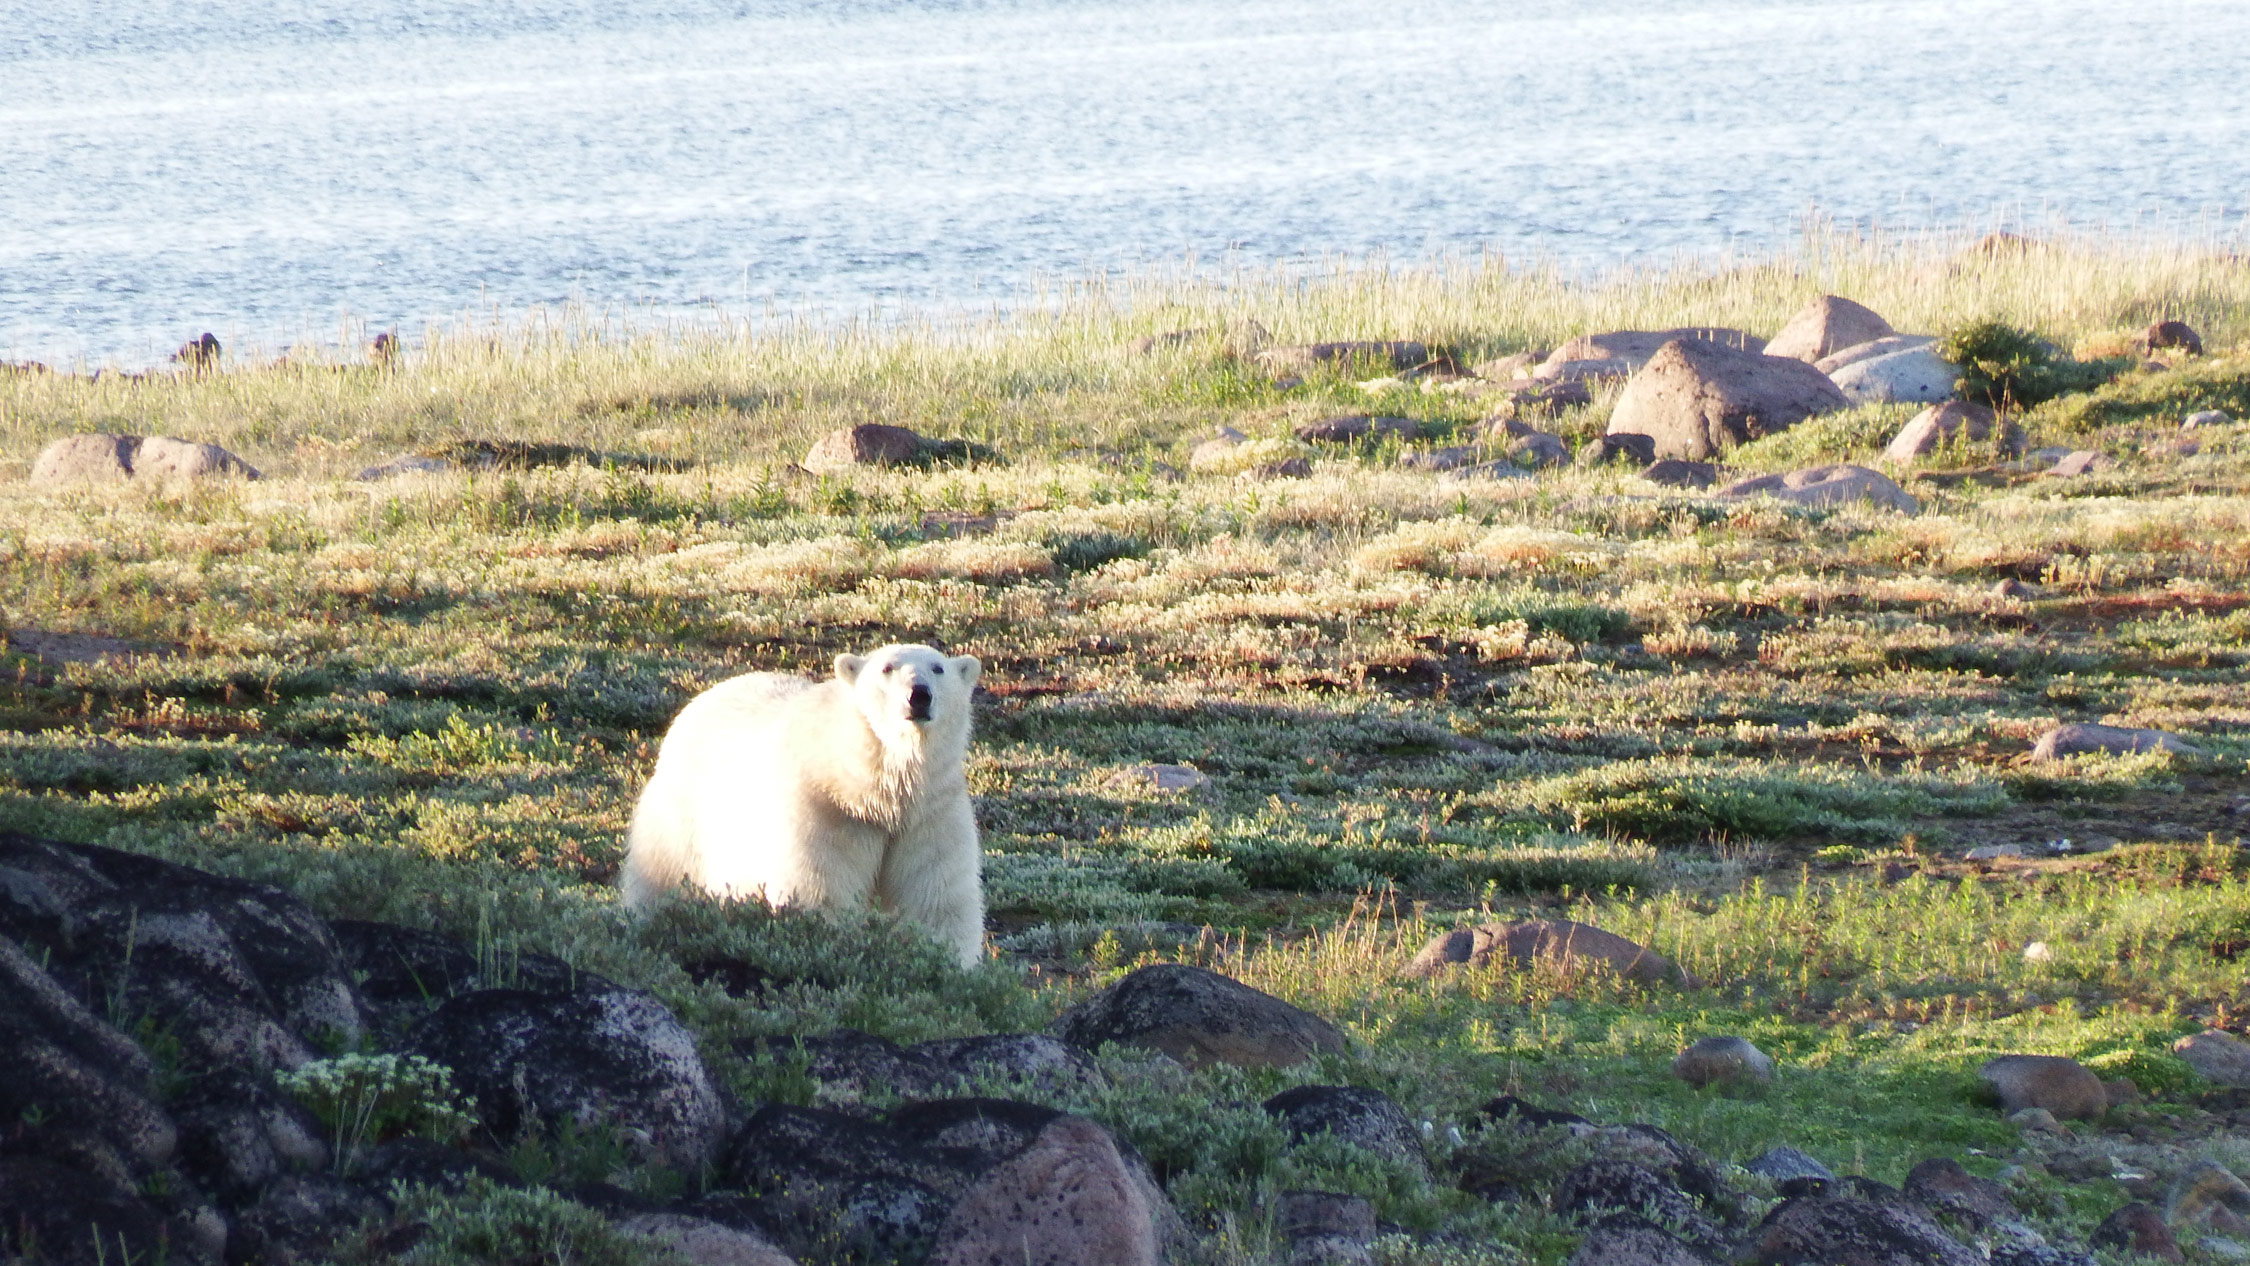 A well-nourished polar bear at Hubbard Point.